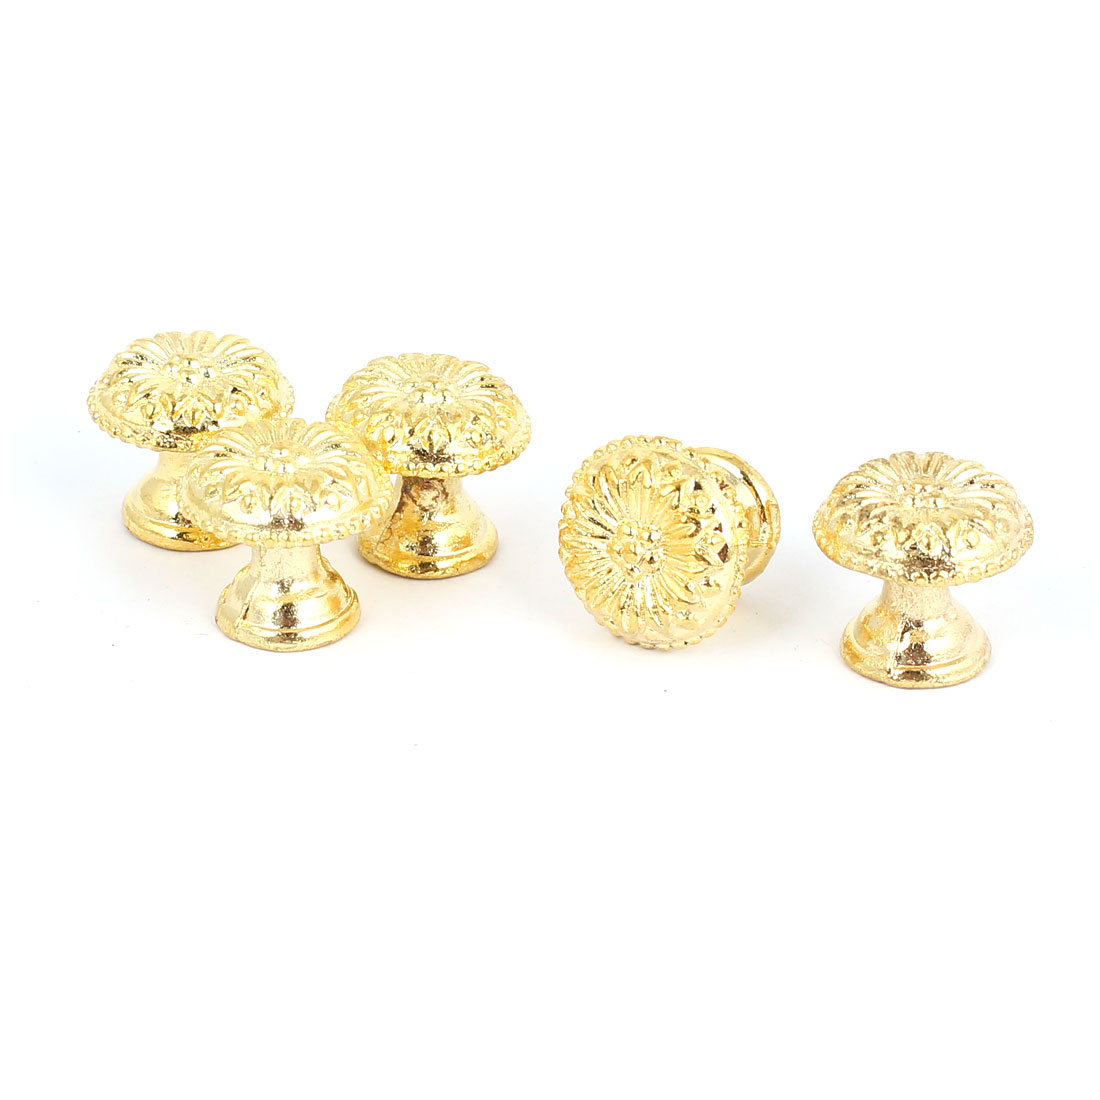 Door Drawer Zinc Alloy Retro Style Round Pull Handle Knob Gold Tone 17x16mm 5pcs